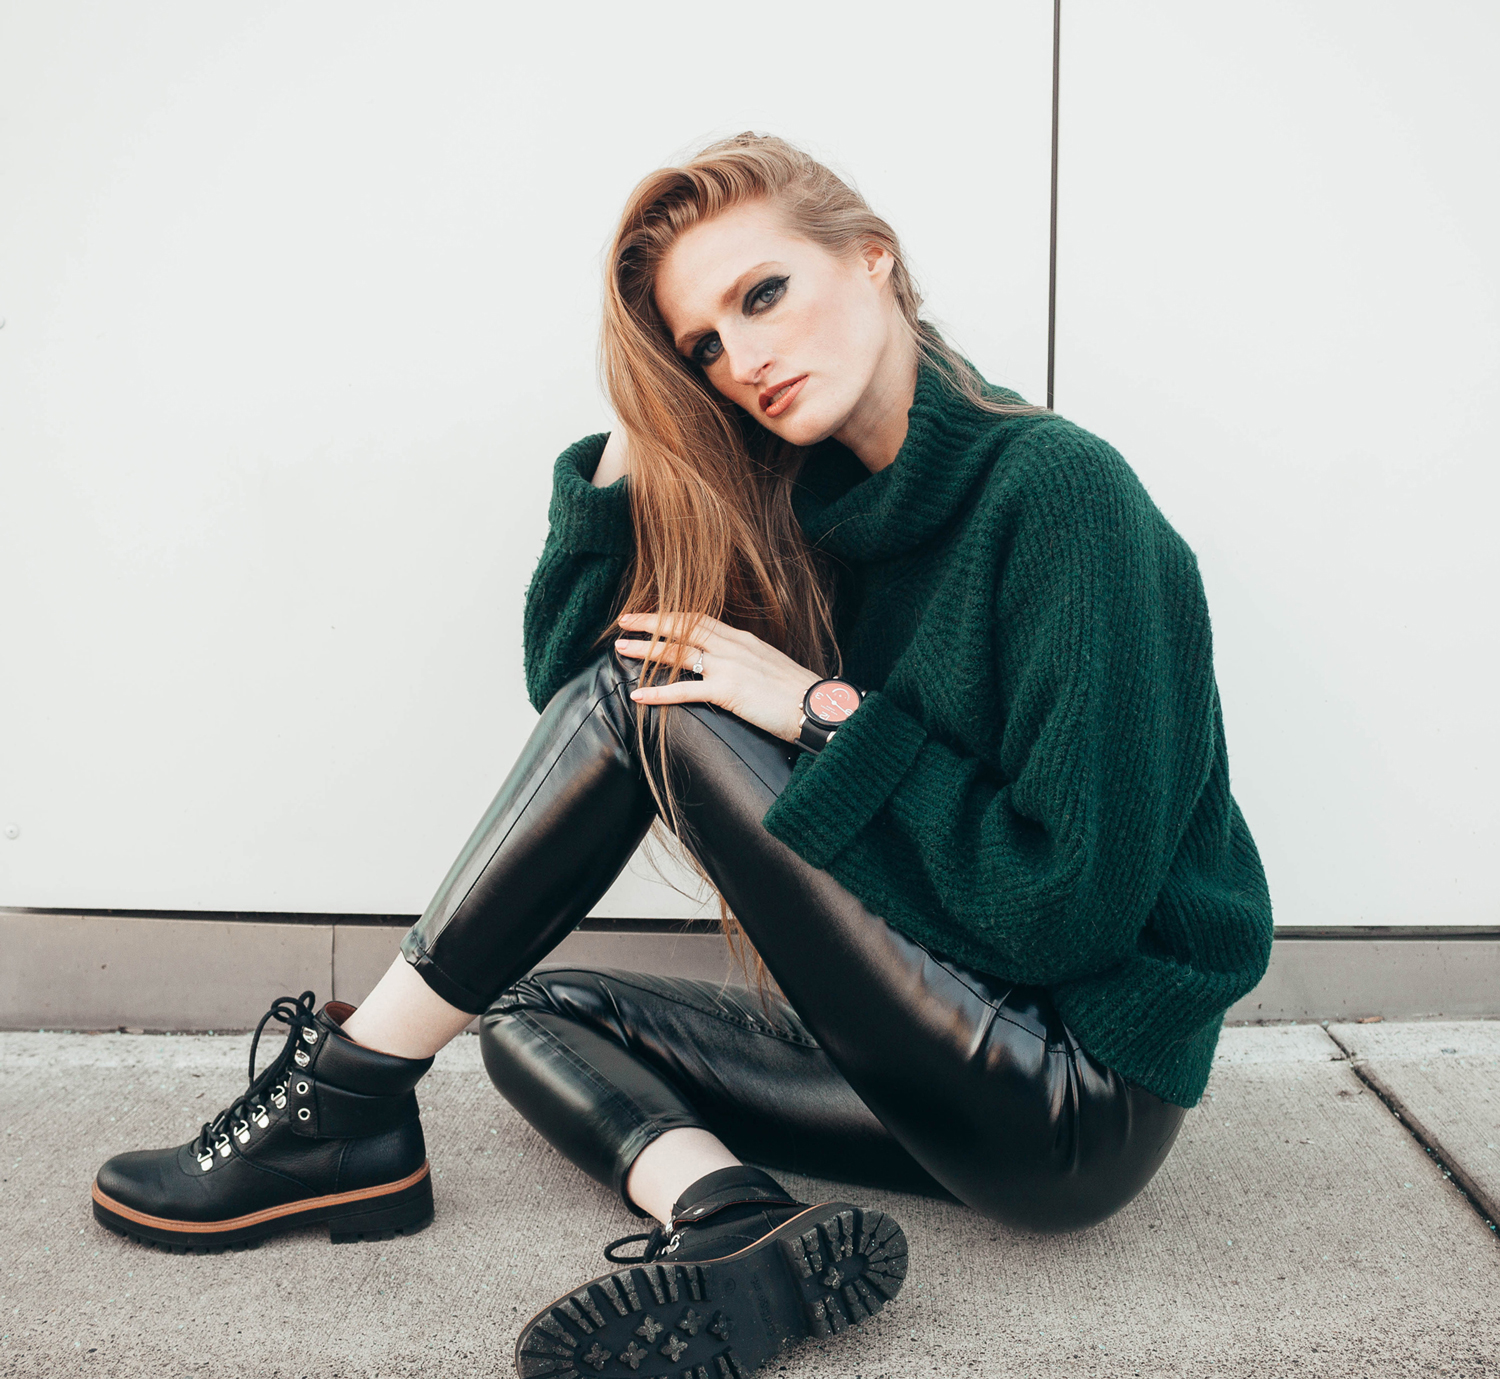 vinyl patent pants green turtle neck sweater xle nakd outfit style black